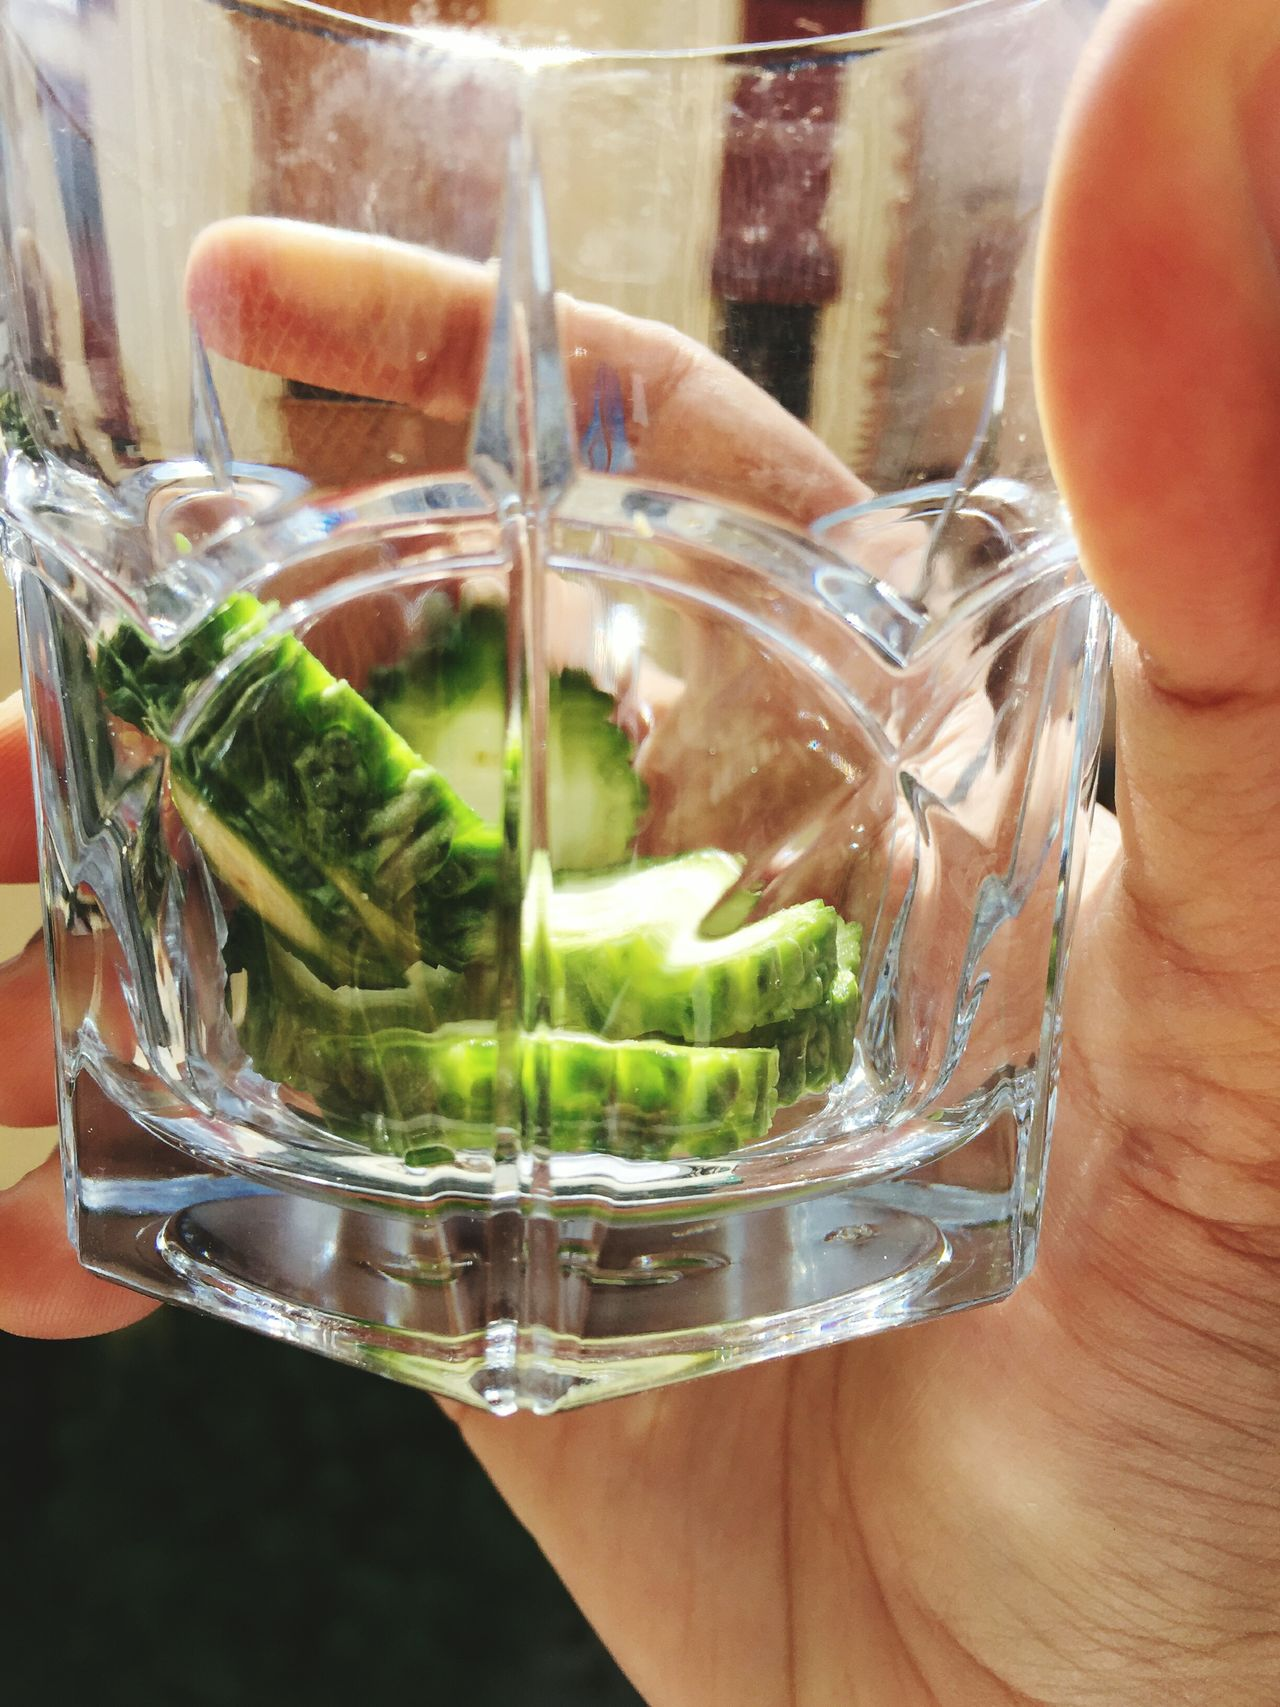 Glass Healthy Eating Healthy Lifestyle Gourd Bitter Gourd Flowers Bitter Groud Gourds Gourd Bitter Bitter Gourd Bittergourd Green Glass - Material Things In A Glass Natural Food Healthy Green Color Close-up Freshness Refreshment